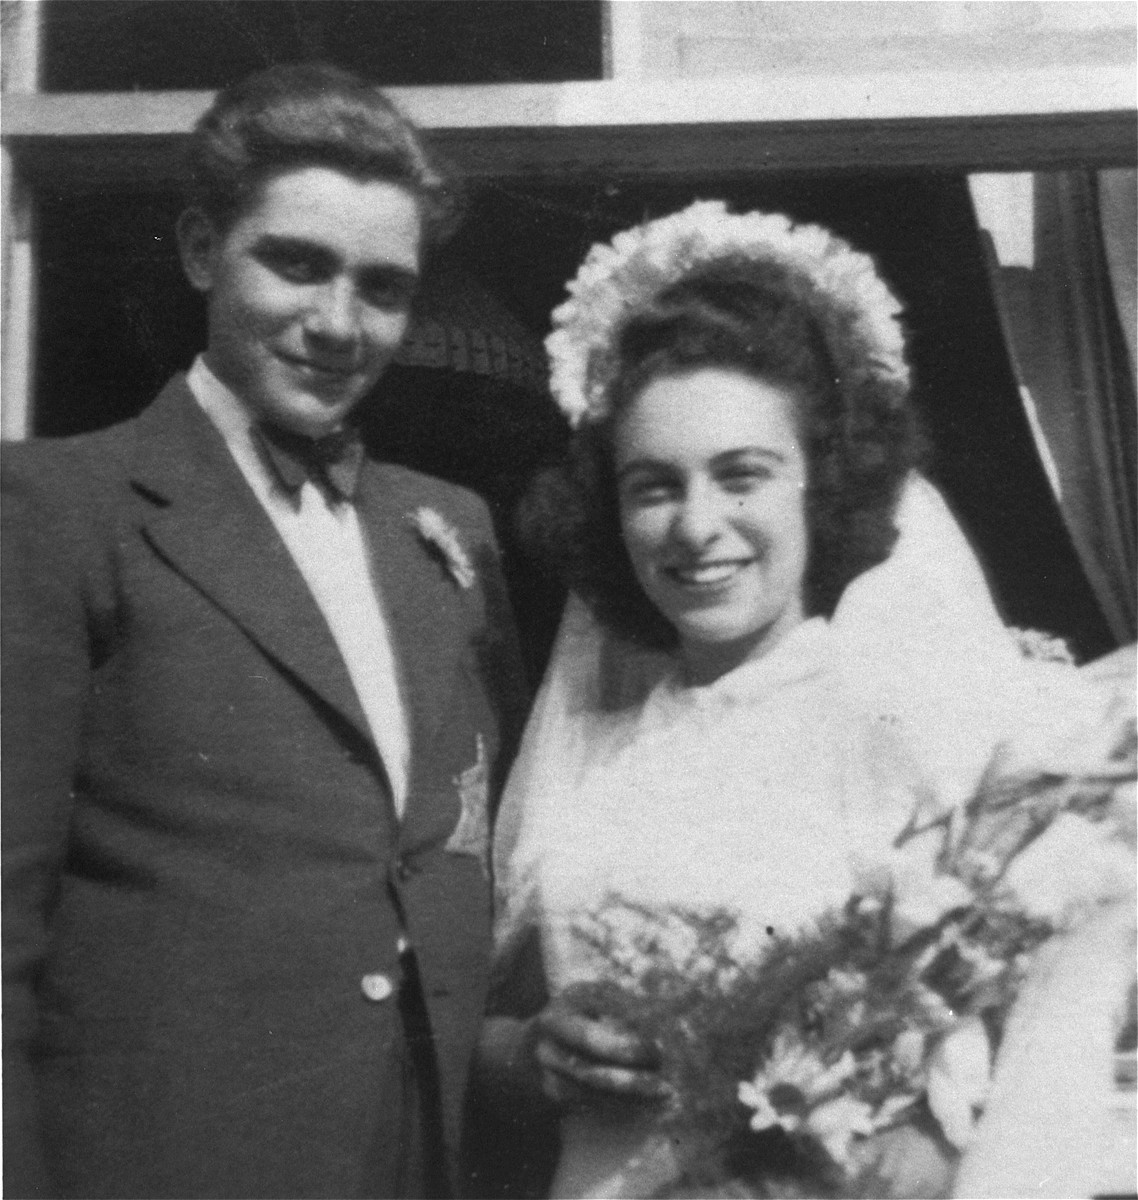 Portrait of a Jewish bride and groom at their wedding in the Westerbork transit camp.  Pictured are Peter and Sonja Margules.